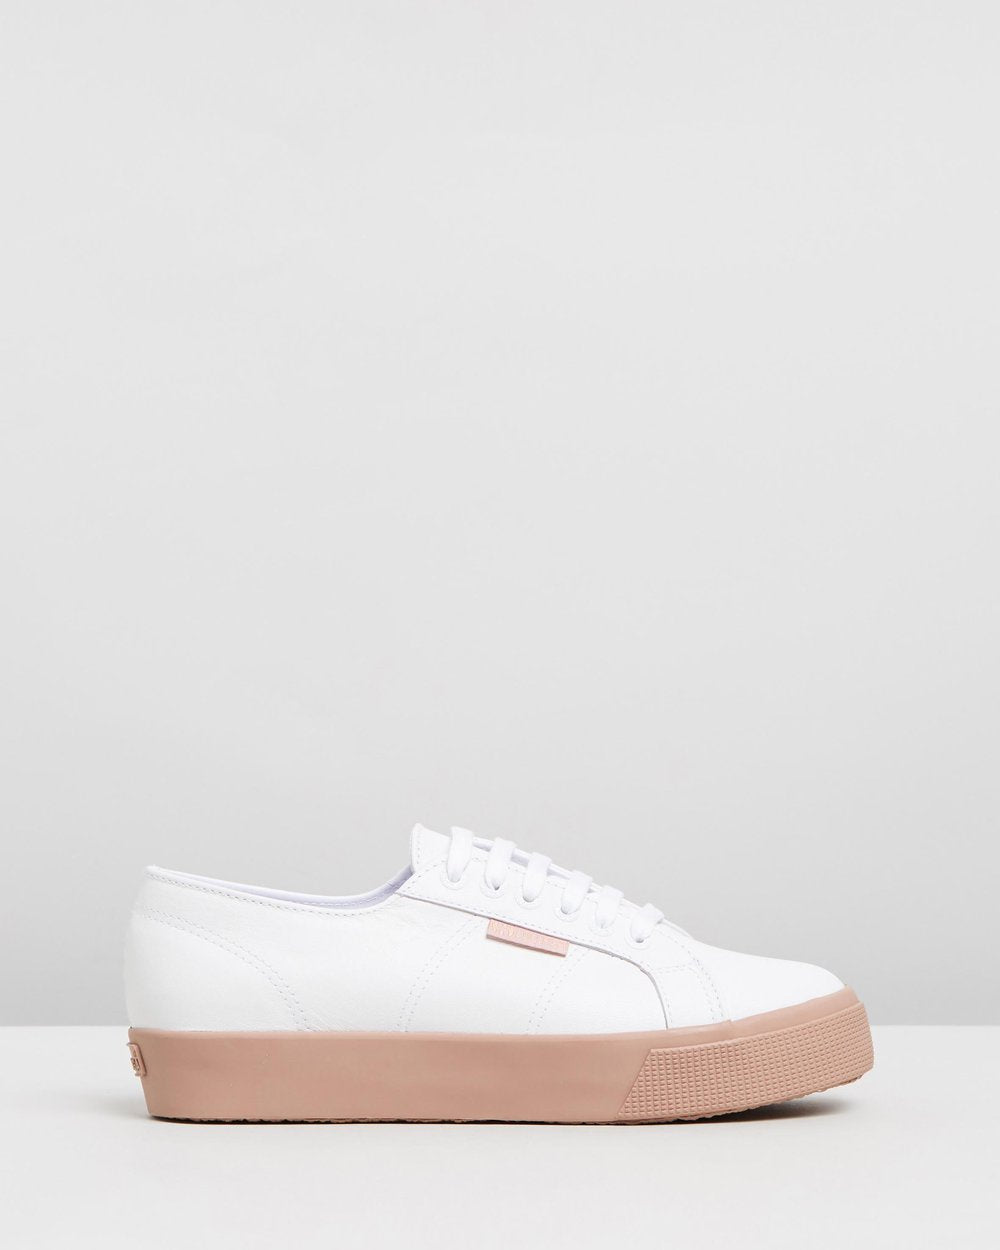 Superga White Cipria Leather Sneaker